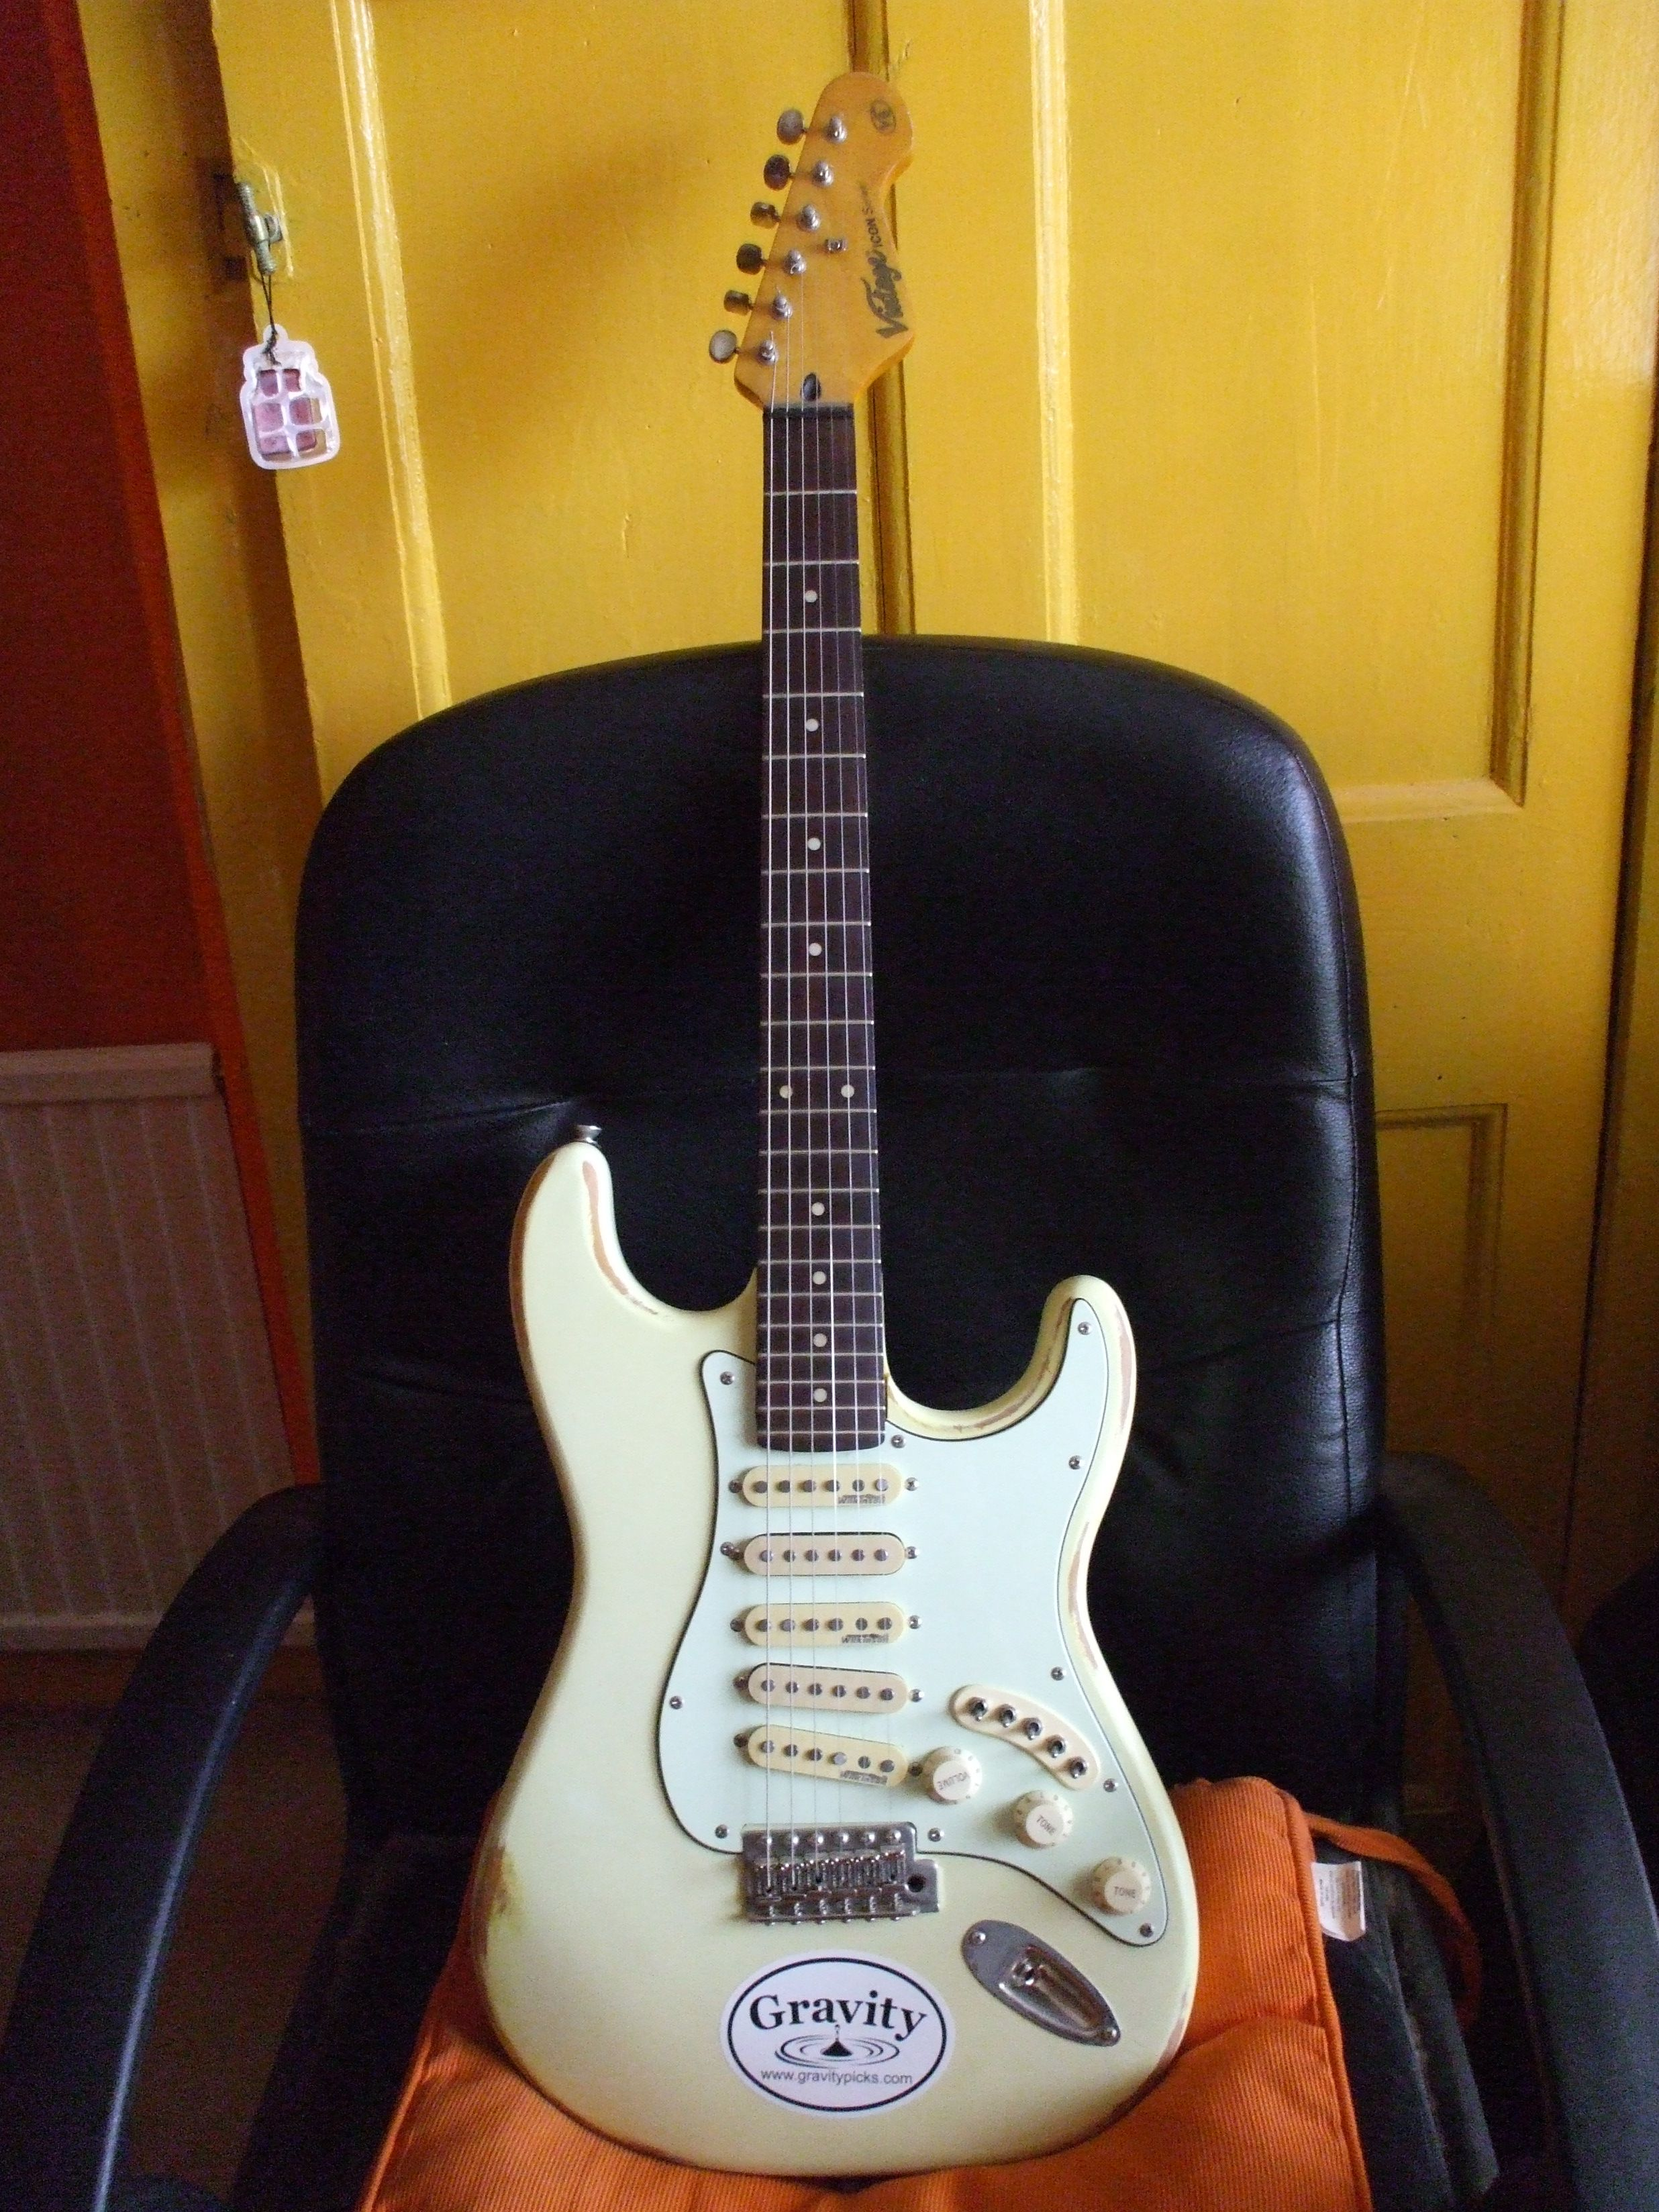 Guitar No 31 Vintage Icon Series V6 Stratocaster Copy This Guitar Has 2 Ironstone Gold Pickups Fitted Between The 3 Wilkins Telecaster Guitar The Originals